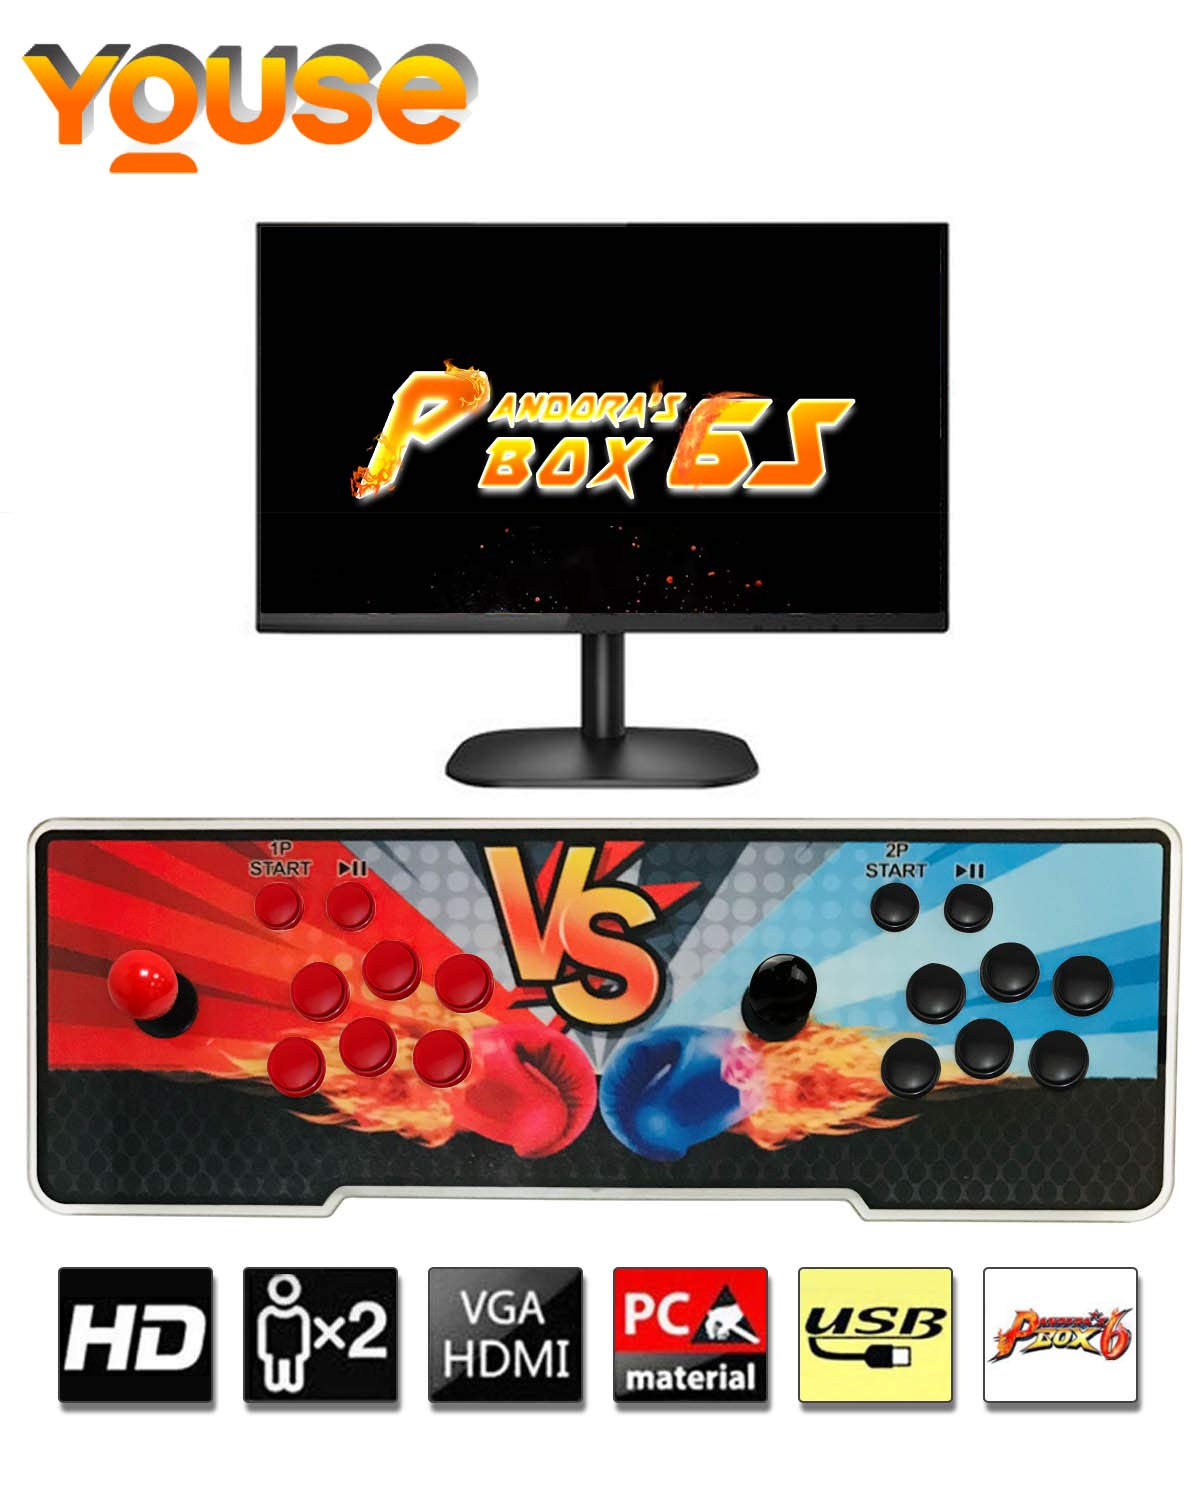 YOUSE Arcade Game Machine, Pandora's Box 6S 1500 Arcade Games in 1 Retro Game Console with 2 Joystick 1280 x 720 Full HD Support HDMI/VGA/USB for PC,TV,PS3.Games Classification , OneButton Pause